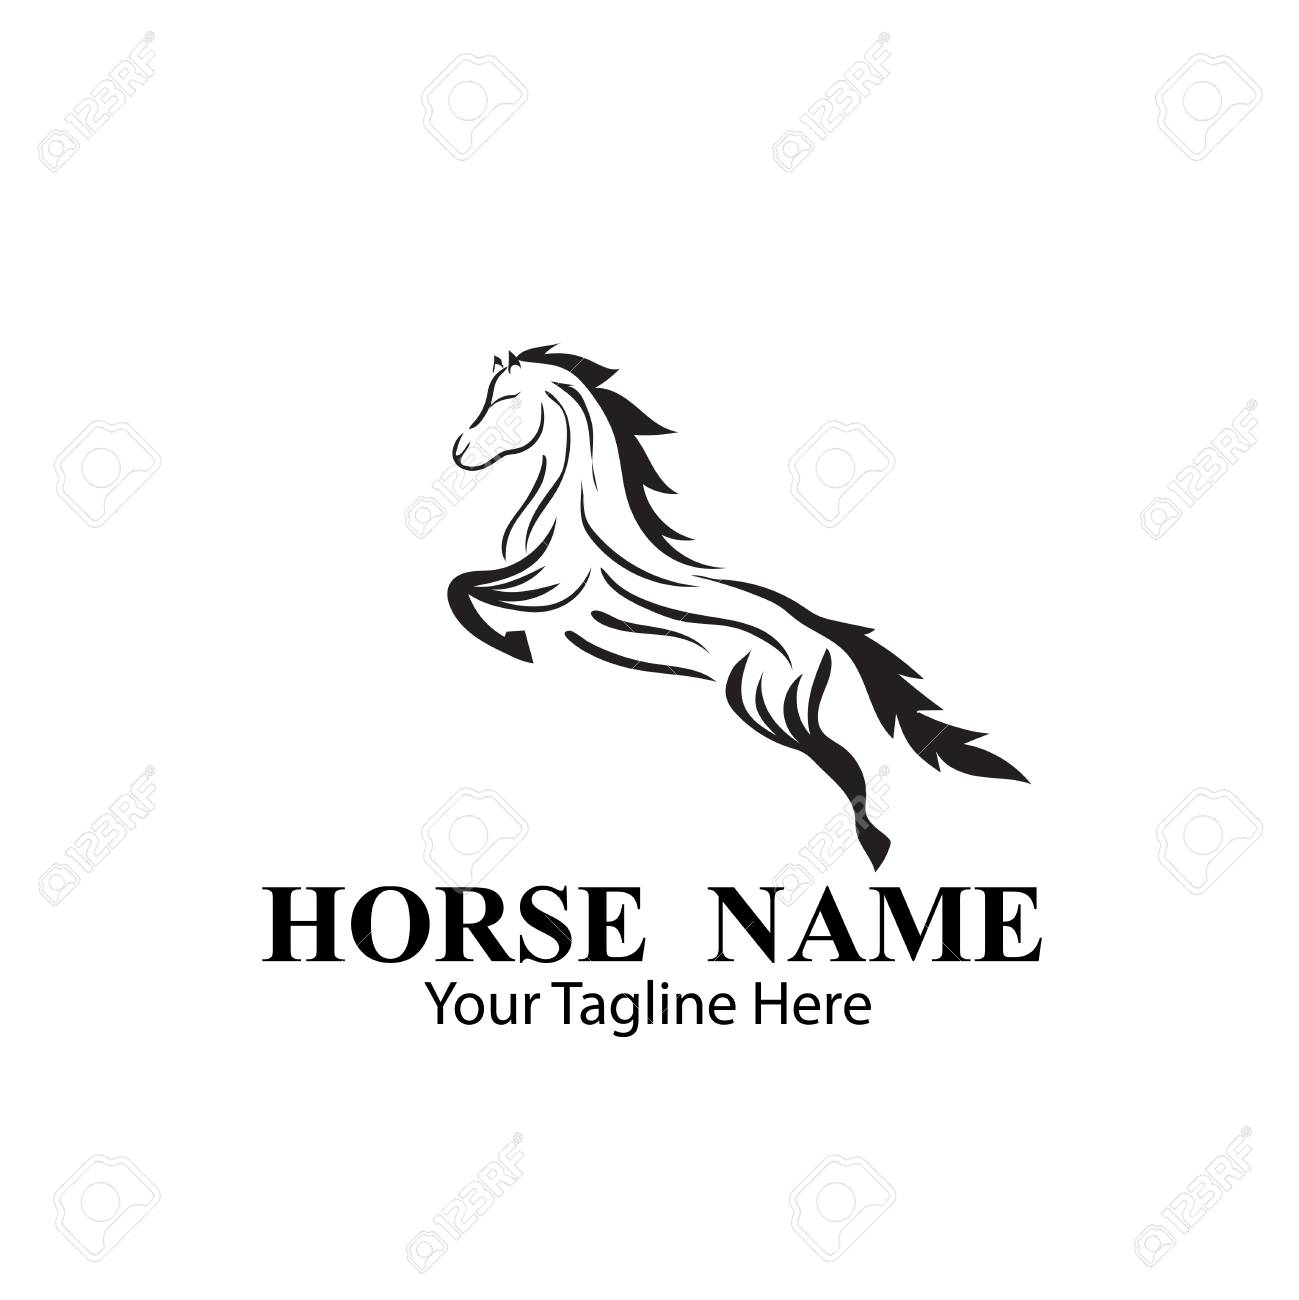 Horse Logo Designs Concept Royalty Free Cliparts Vectors And Stock Illustration Image 117596669